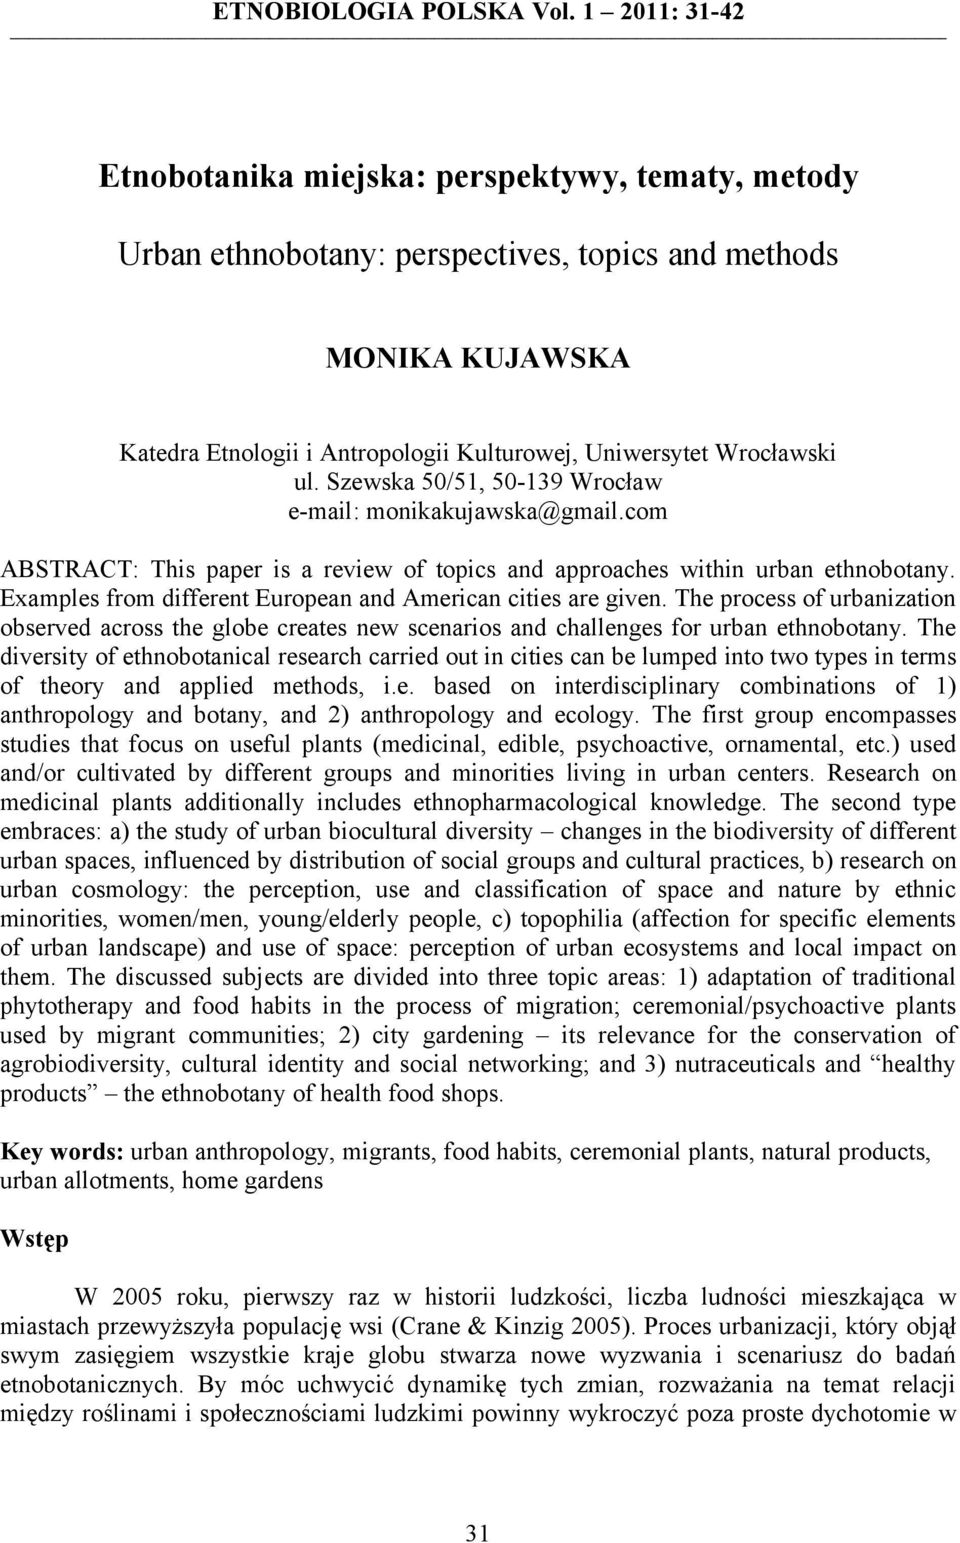 ul. Szewska 50/51, 50-139 Wrocław e-mail: monikakujawska@gmail.com ABSTRACT: This paper is a review of topics and approaches within urban ethnobotany.